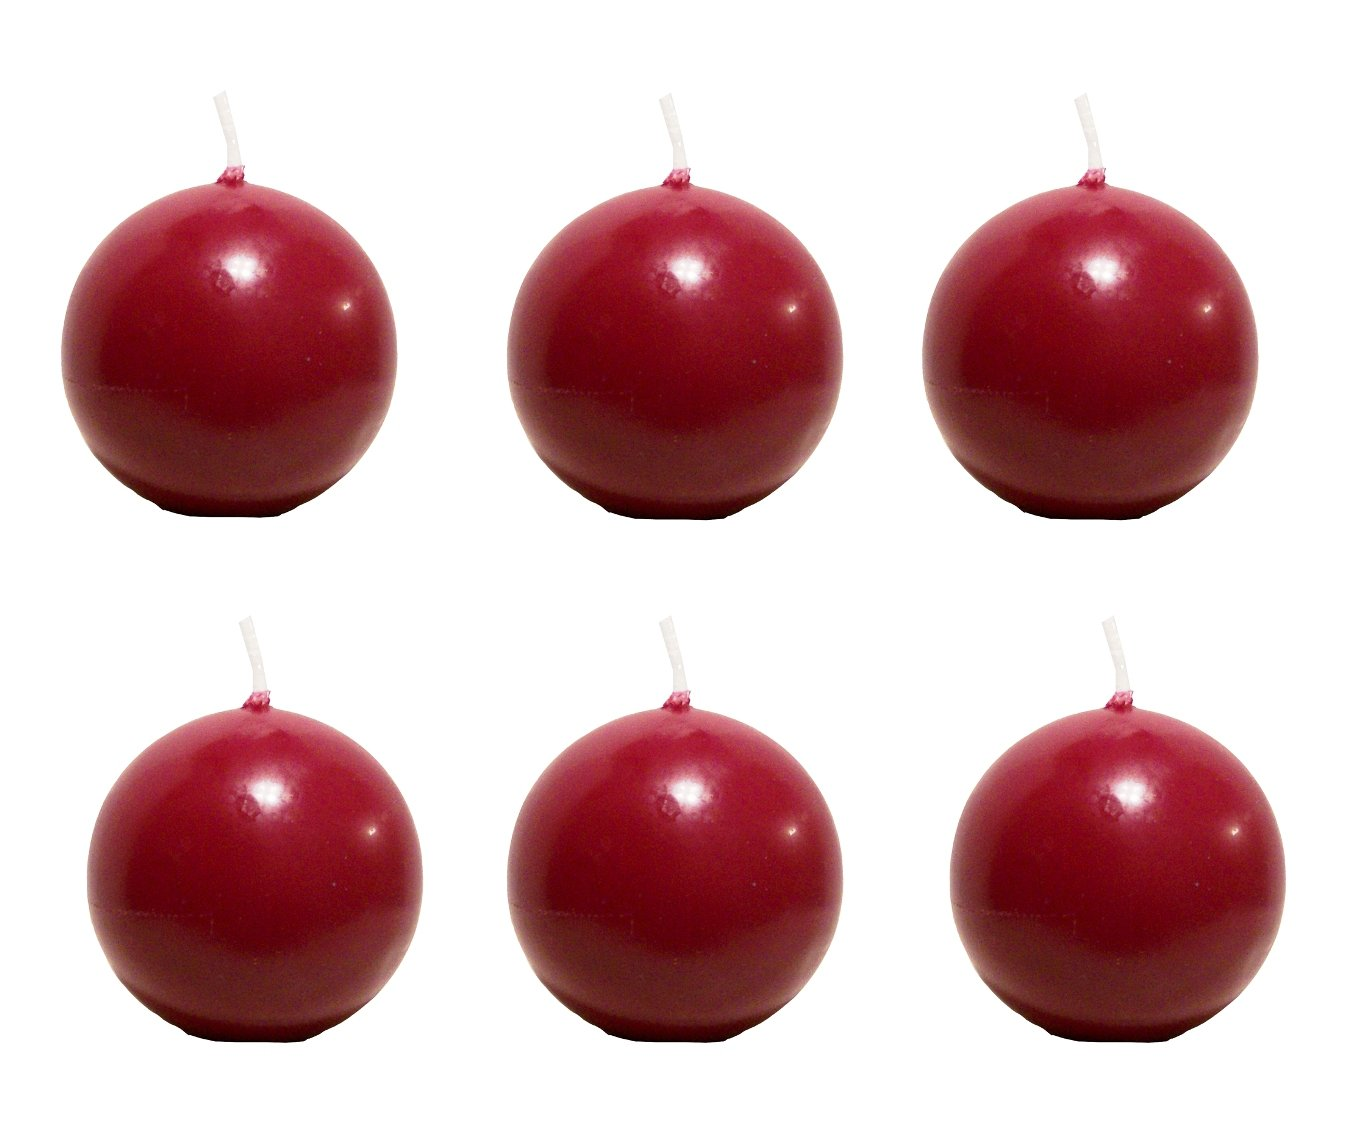 Biedermann & Sons 2-3/4-Inch Round-Shaped Candles, Burgundy, Set of 6